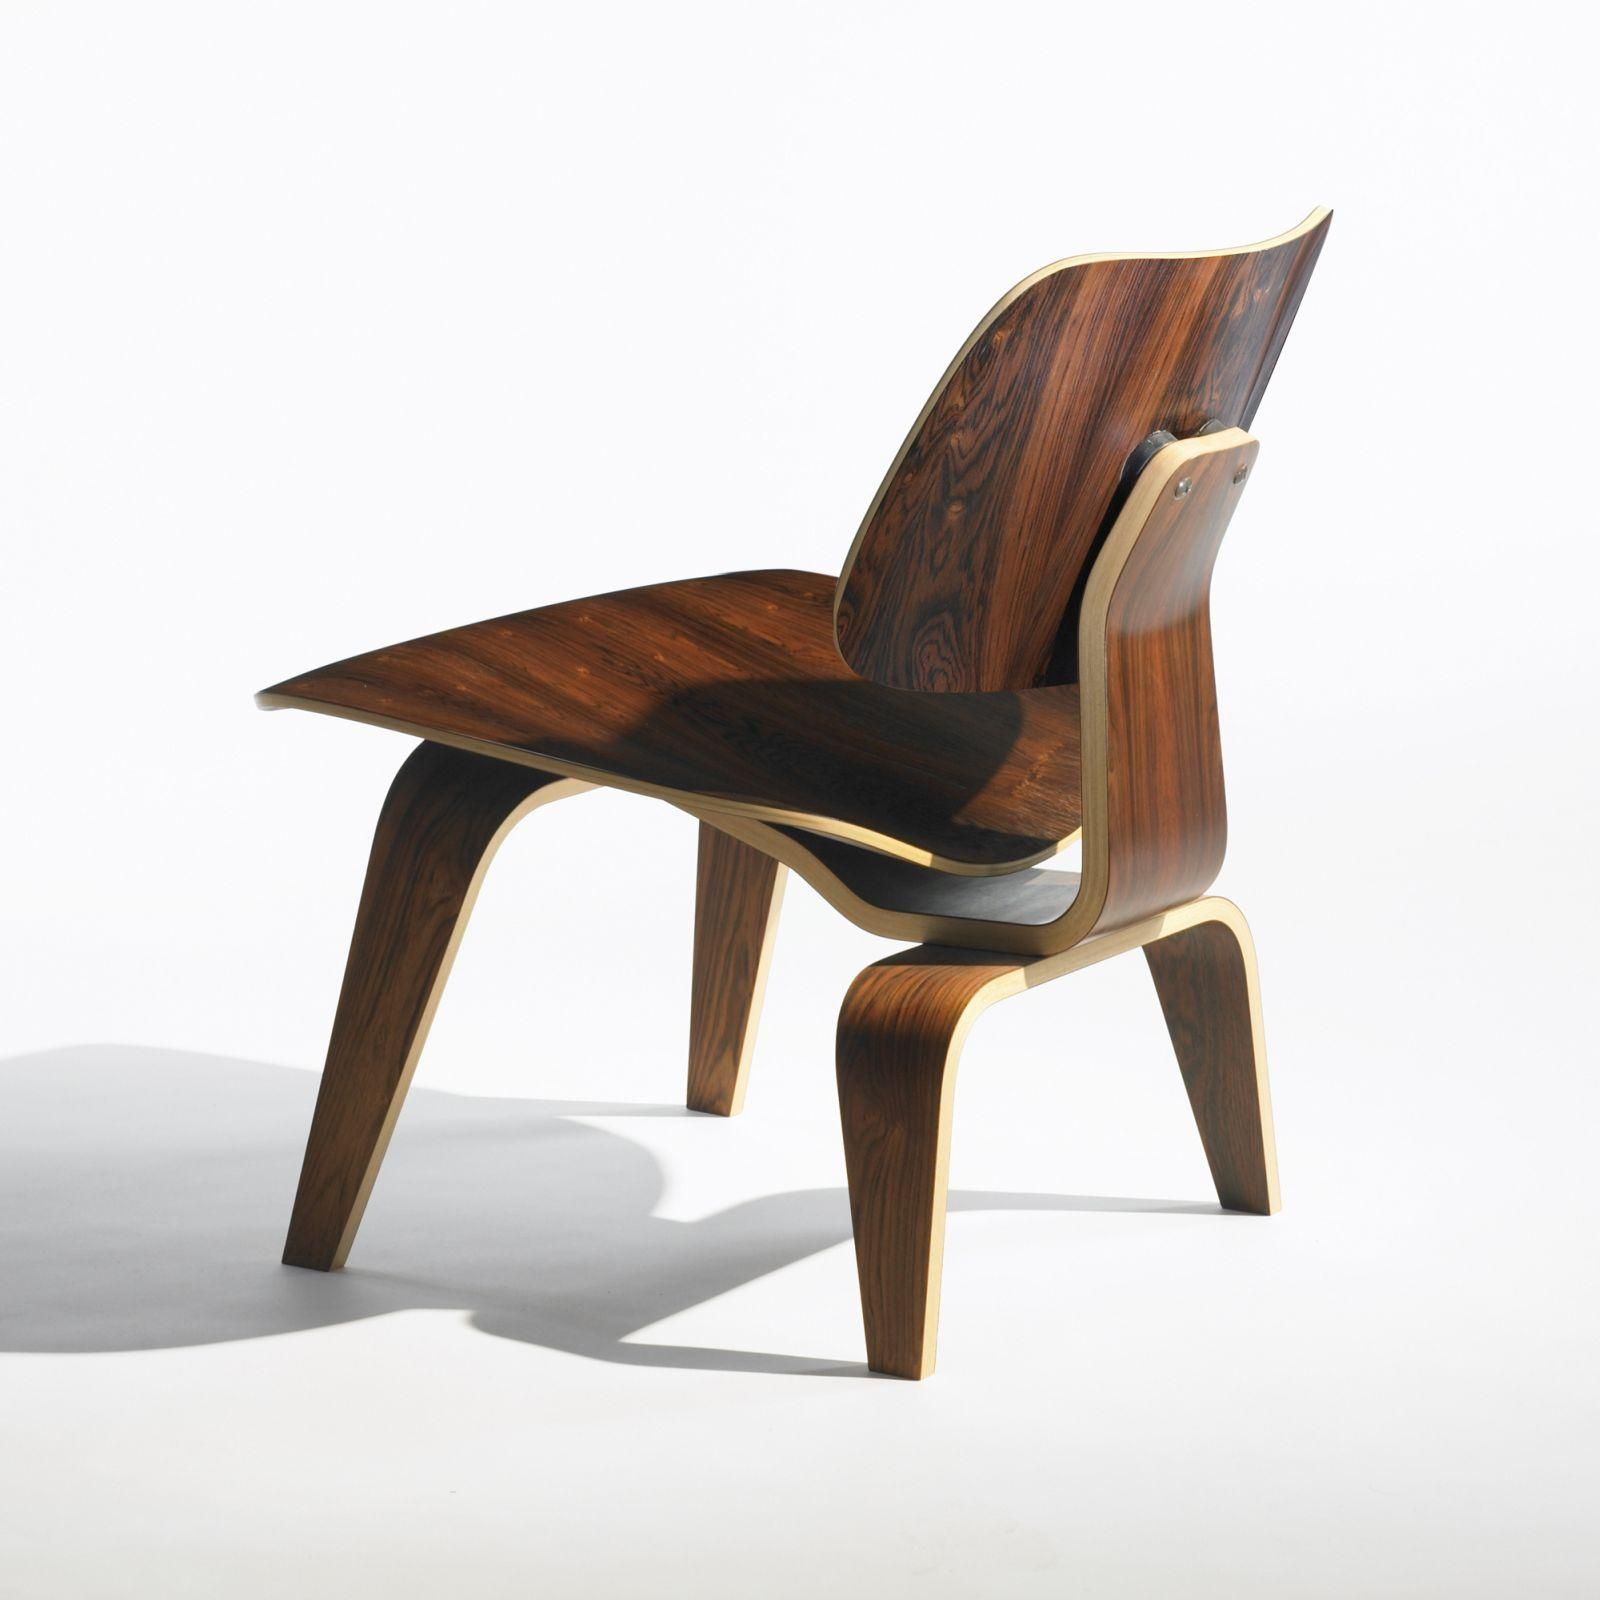 Current favourite vintage chair Ray and Charles Eames classic